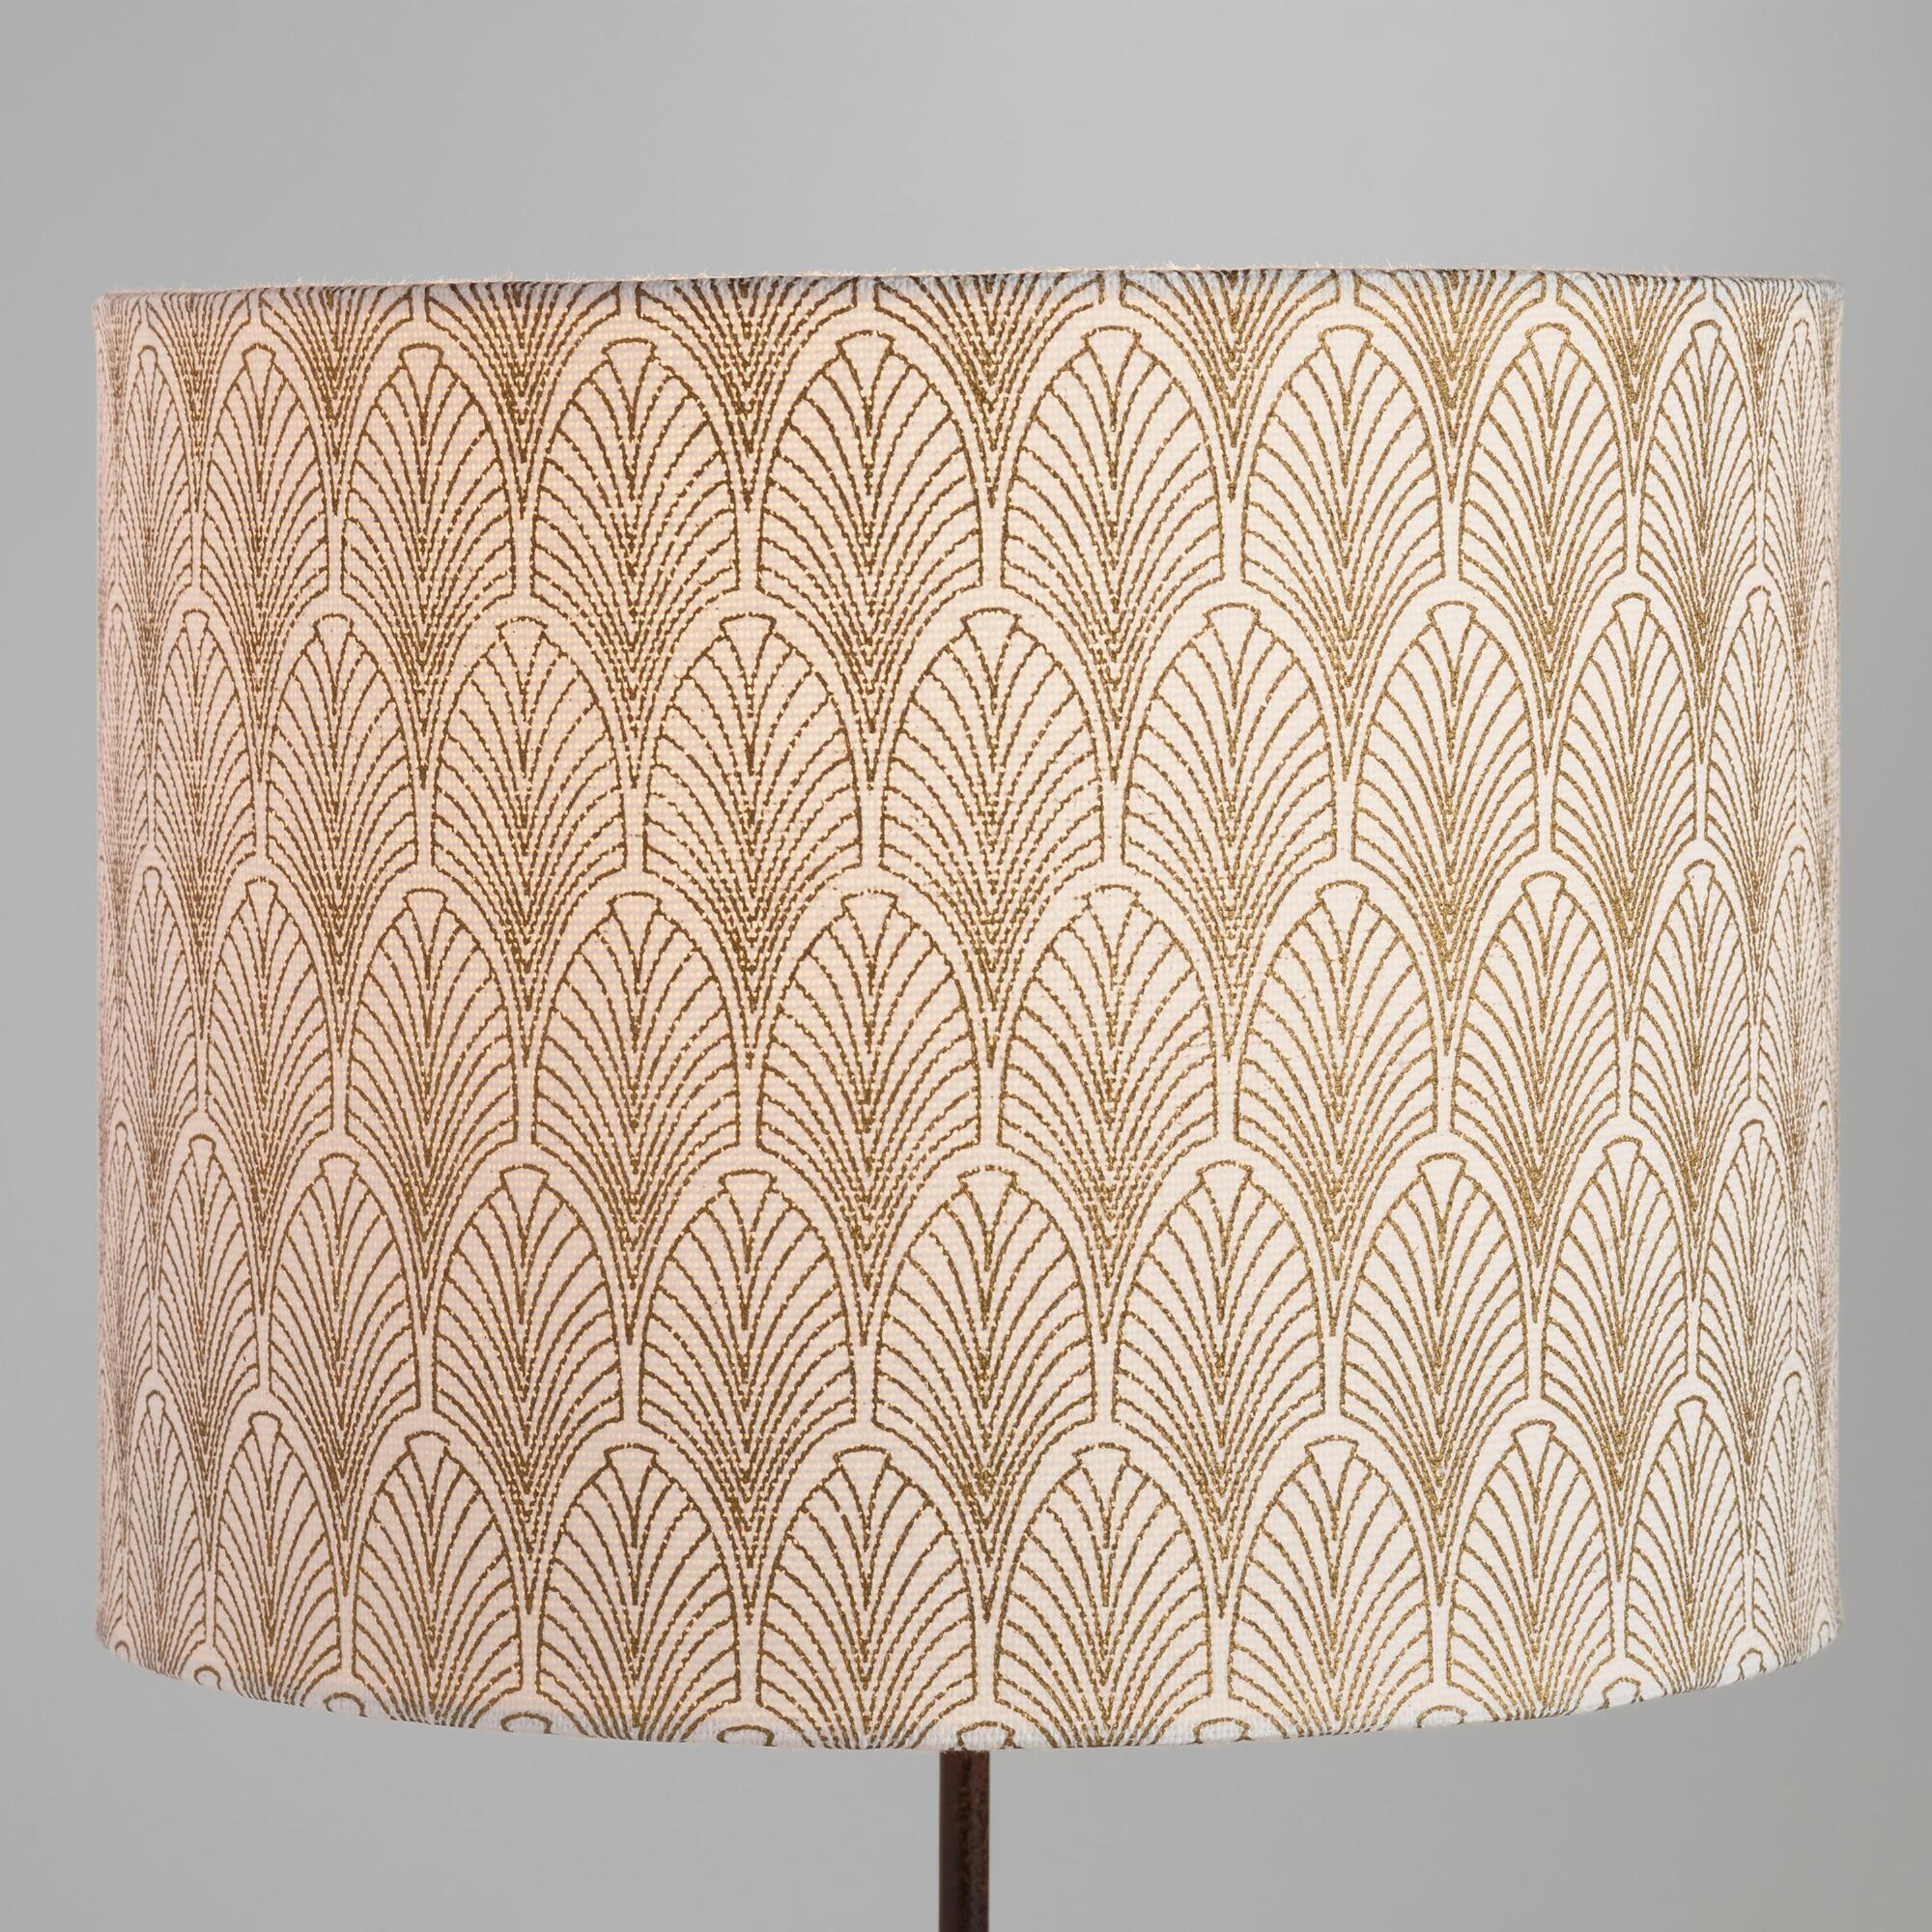 table top lamps unique lamp shades world market iipsrv fcgi miniature accent gold fan cotton drum shade clearance sectionals west elm furniture reviews lucite nesting tables